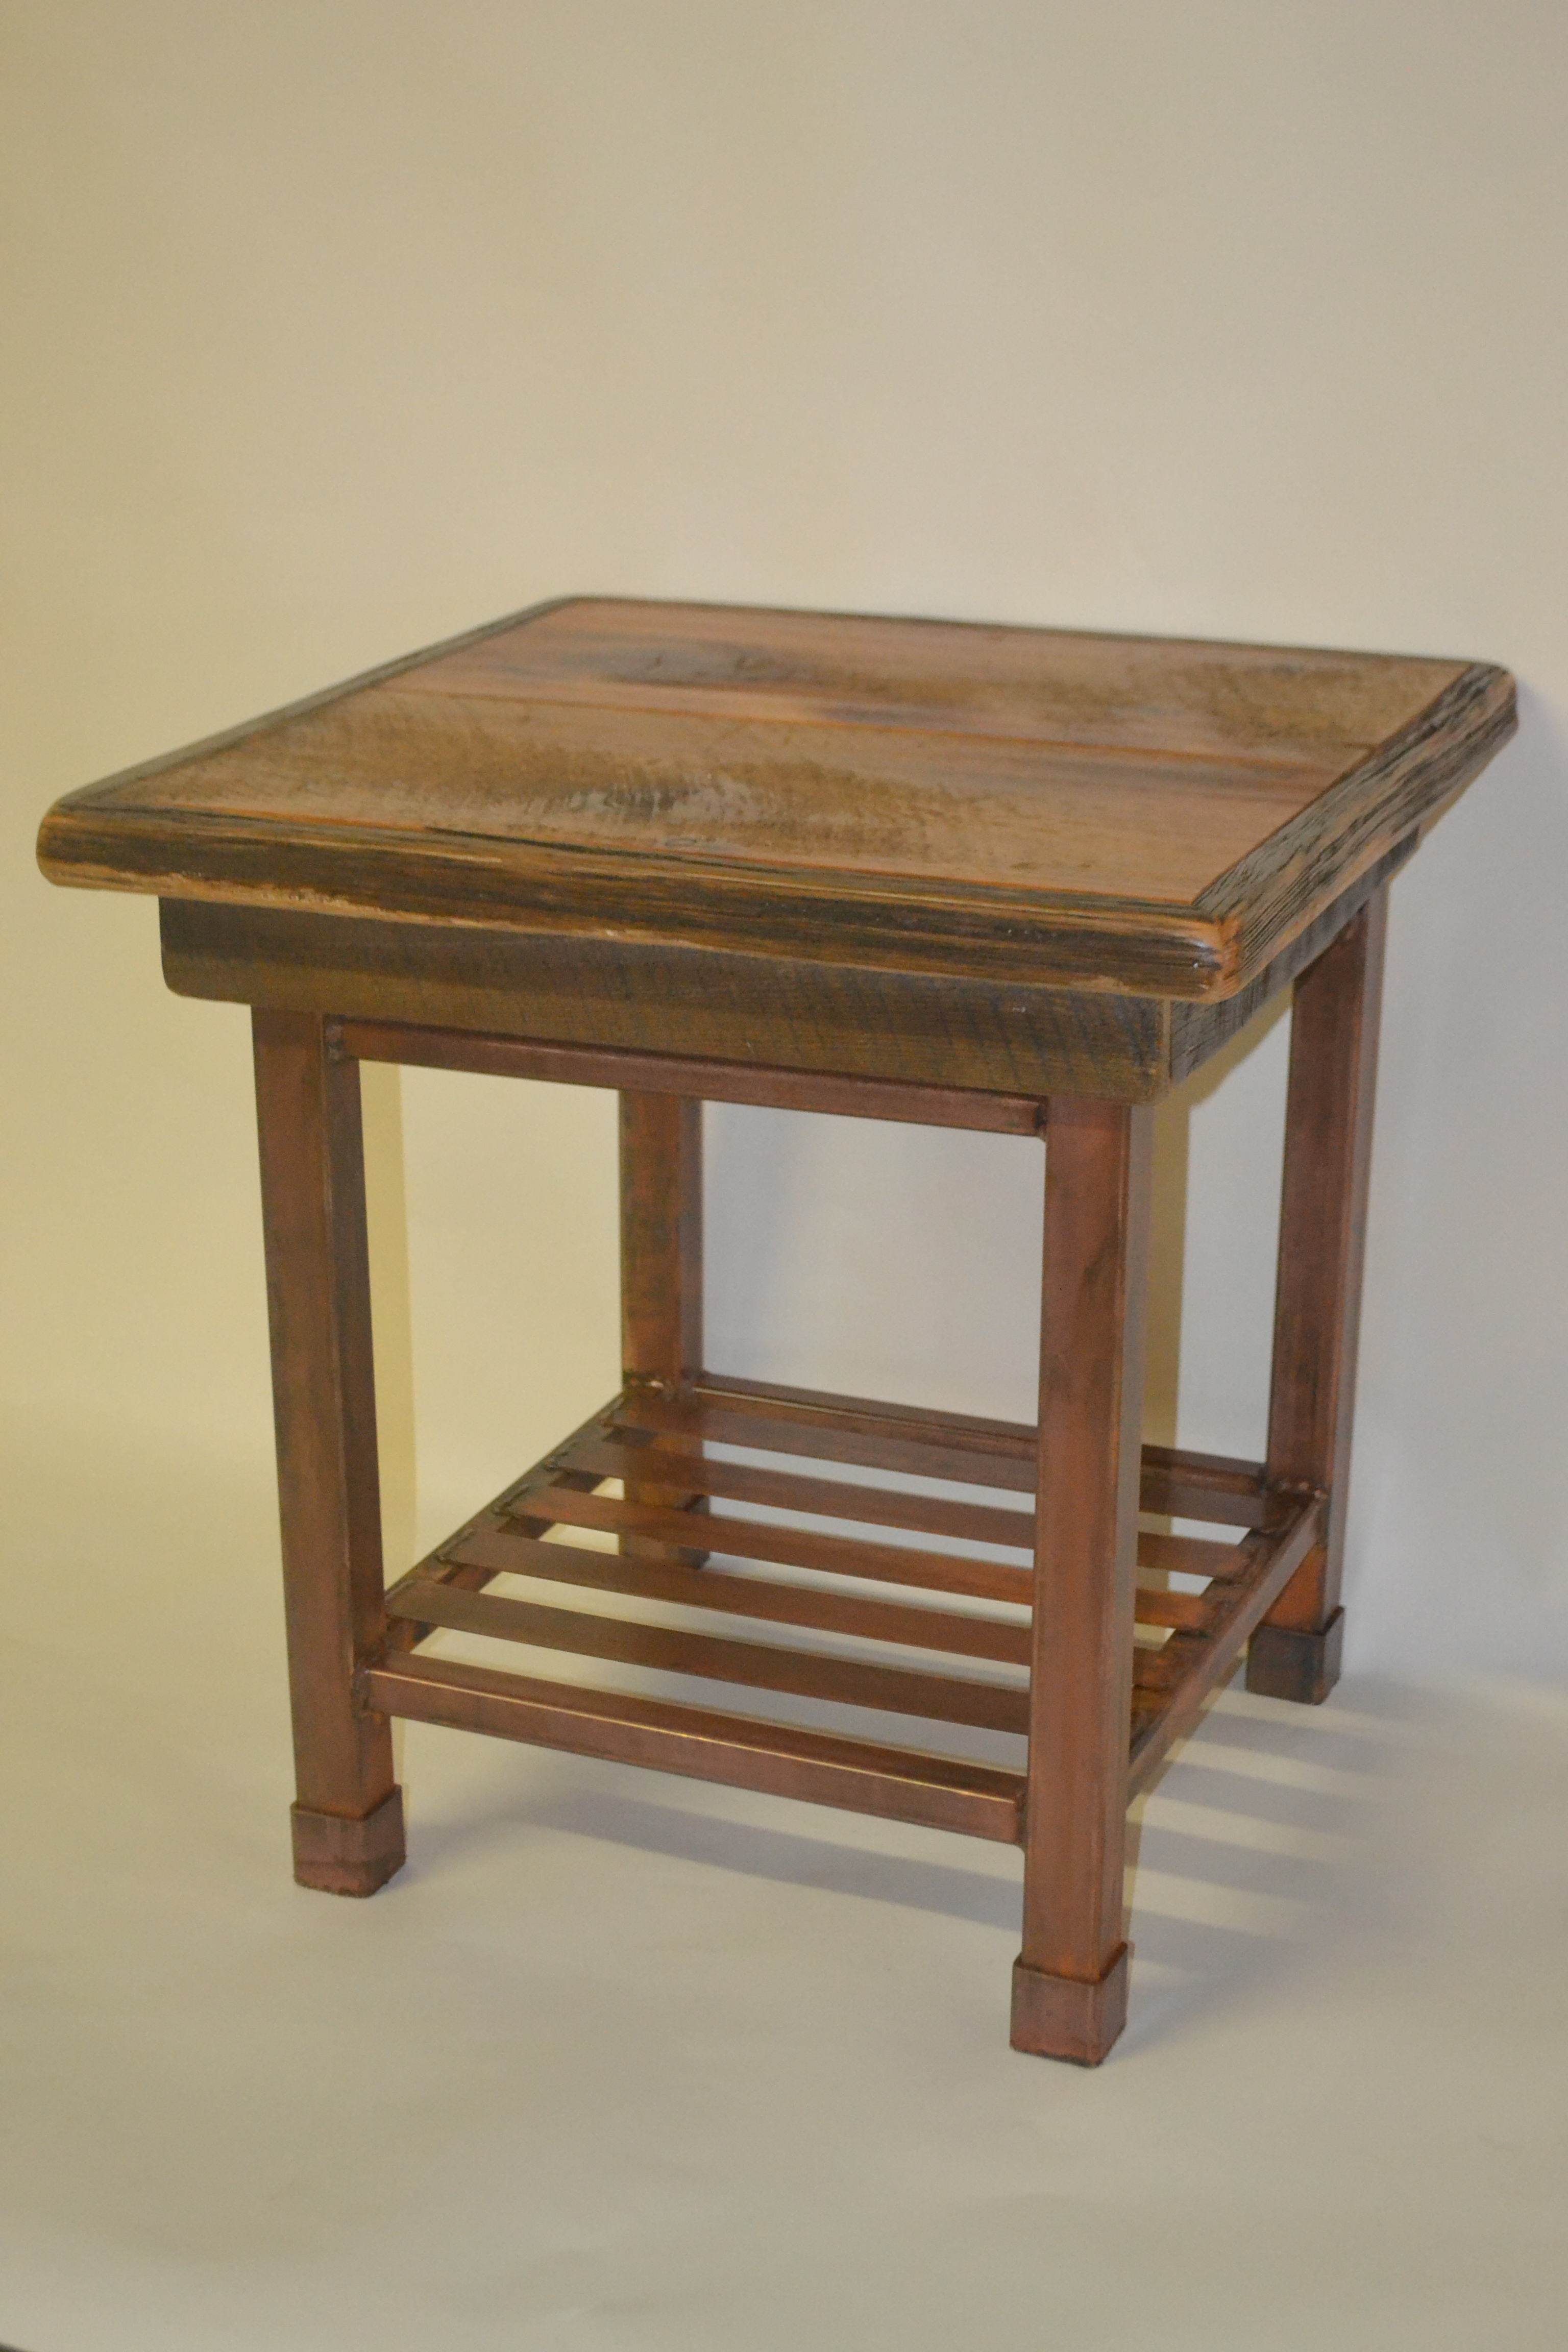 Iron and wood furniture - Click